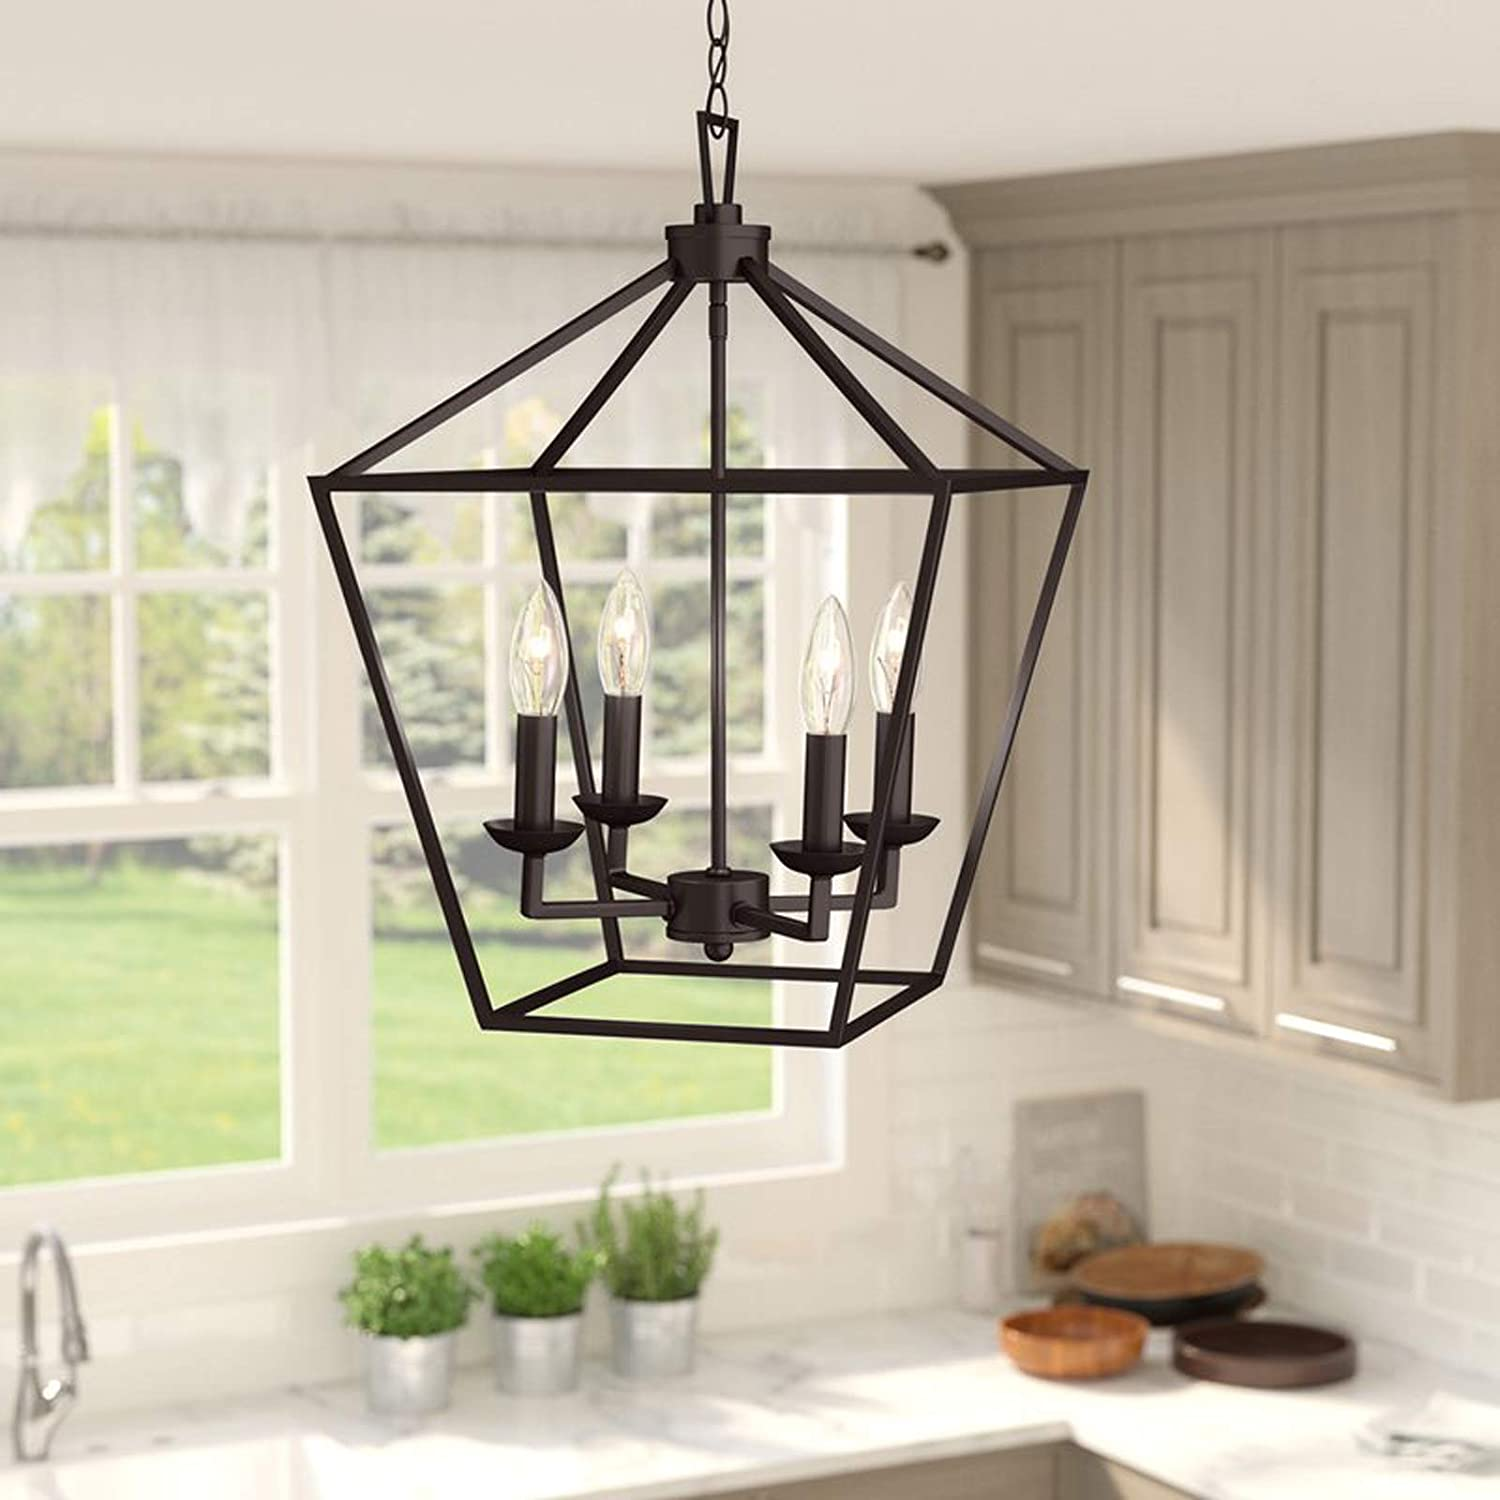 4 light lantern pendant contemporary ceiling light fixture for dining room kitchen living room or bedroom rubbed oil bronze amazon com